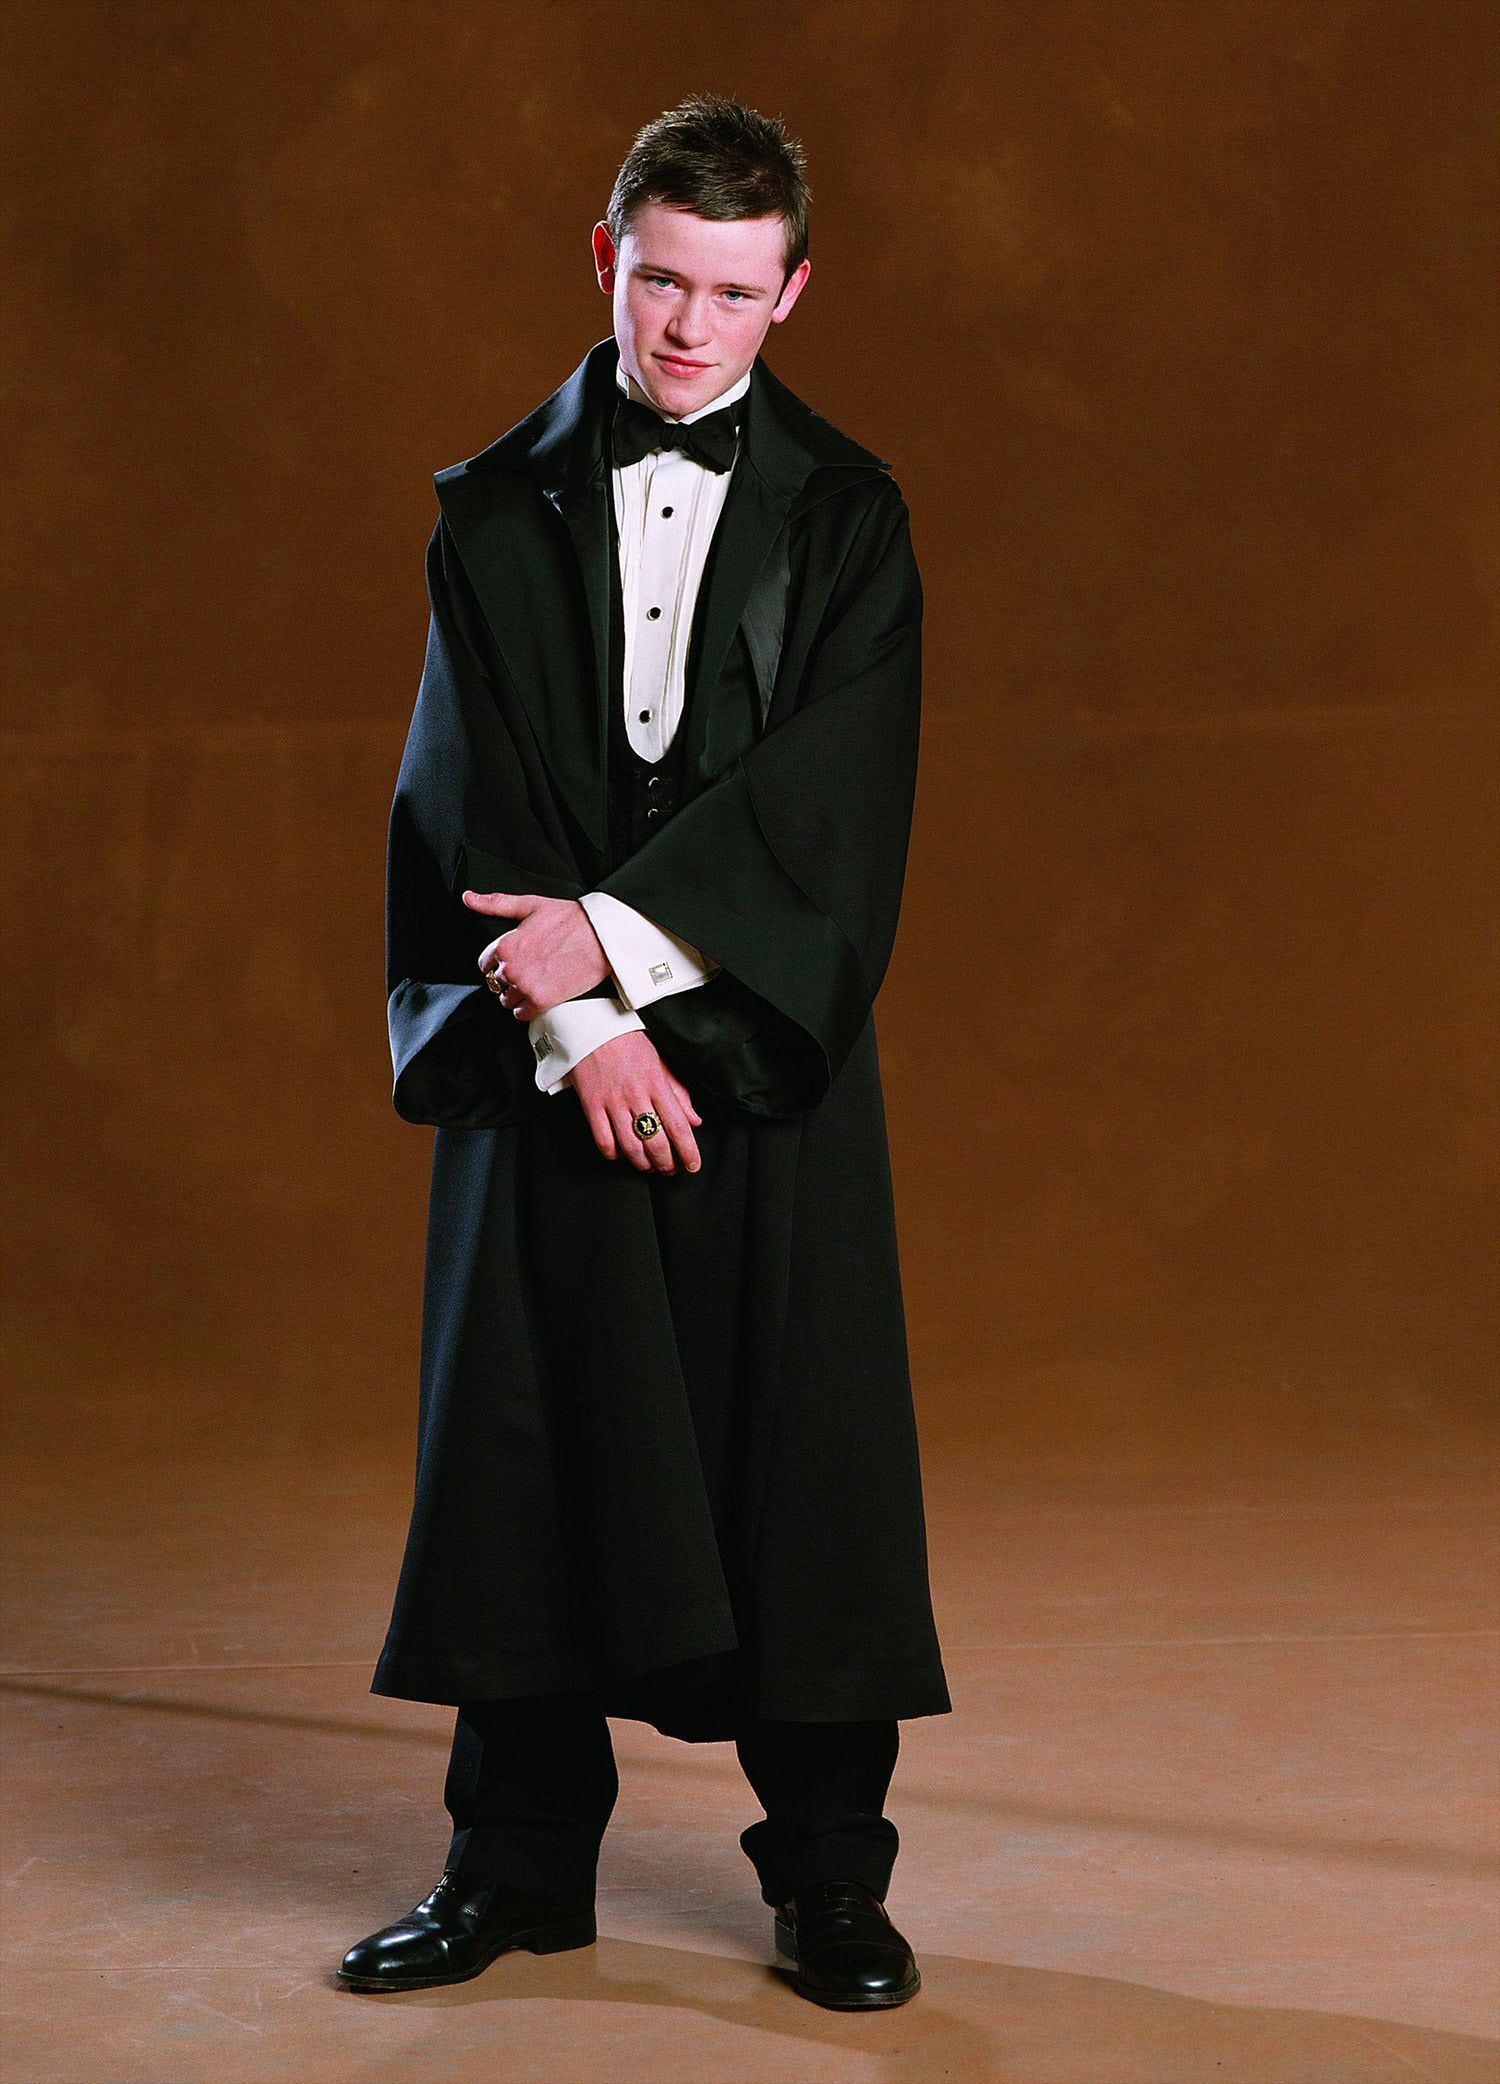 Seamus Finnigan Yule Ball portrait